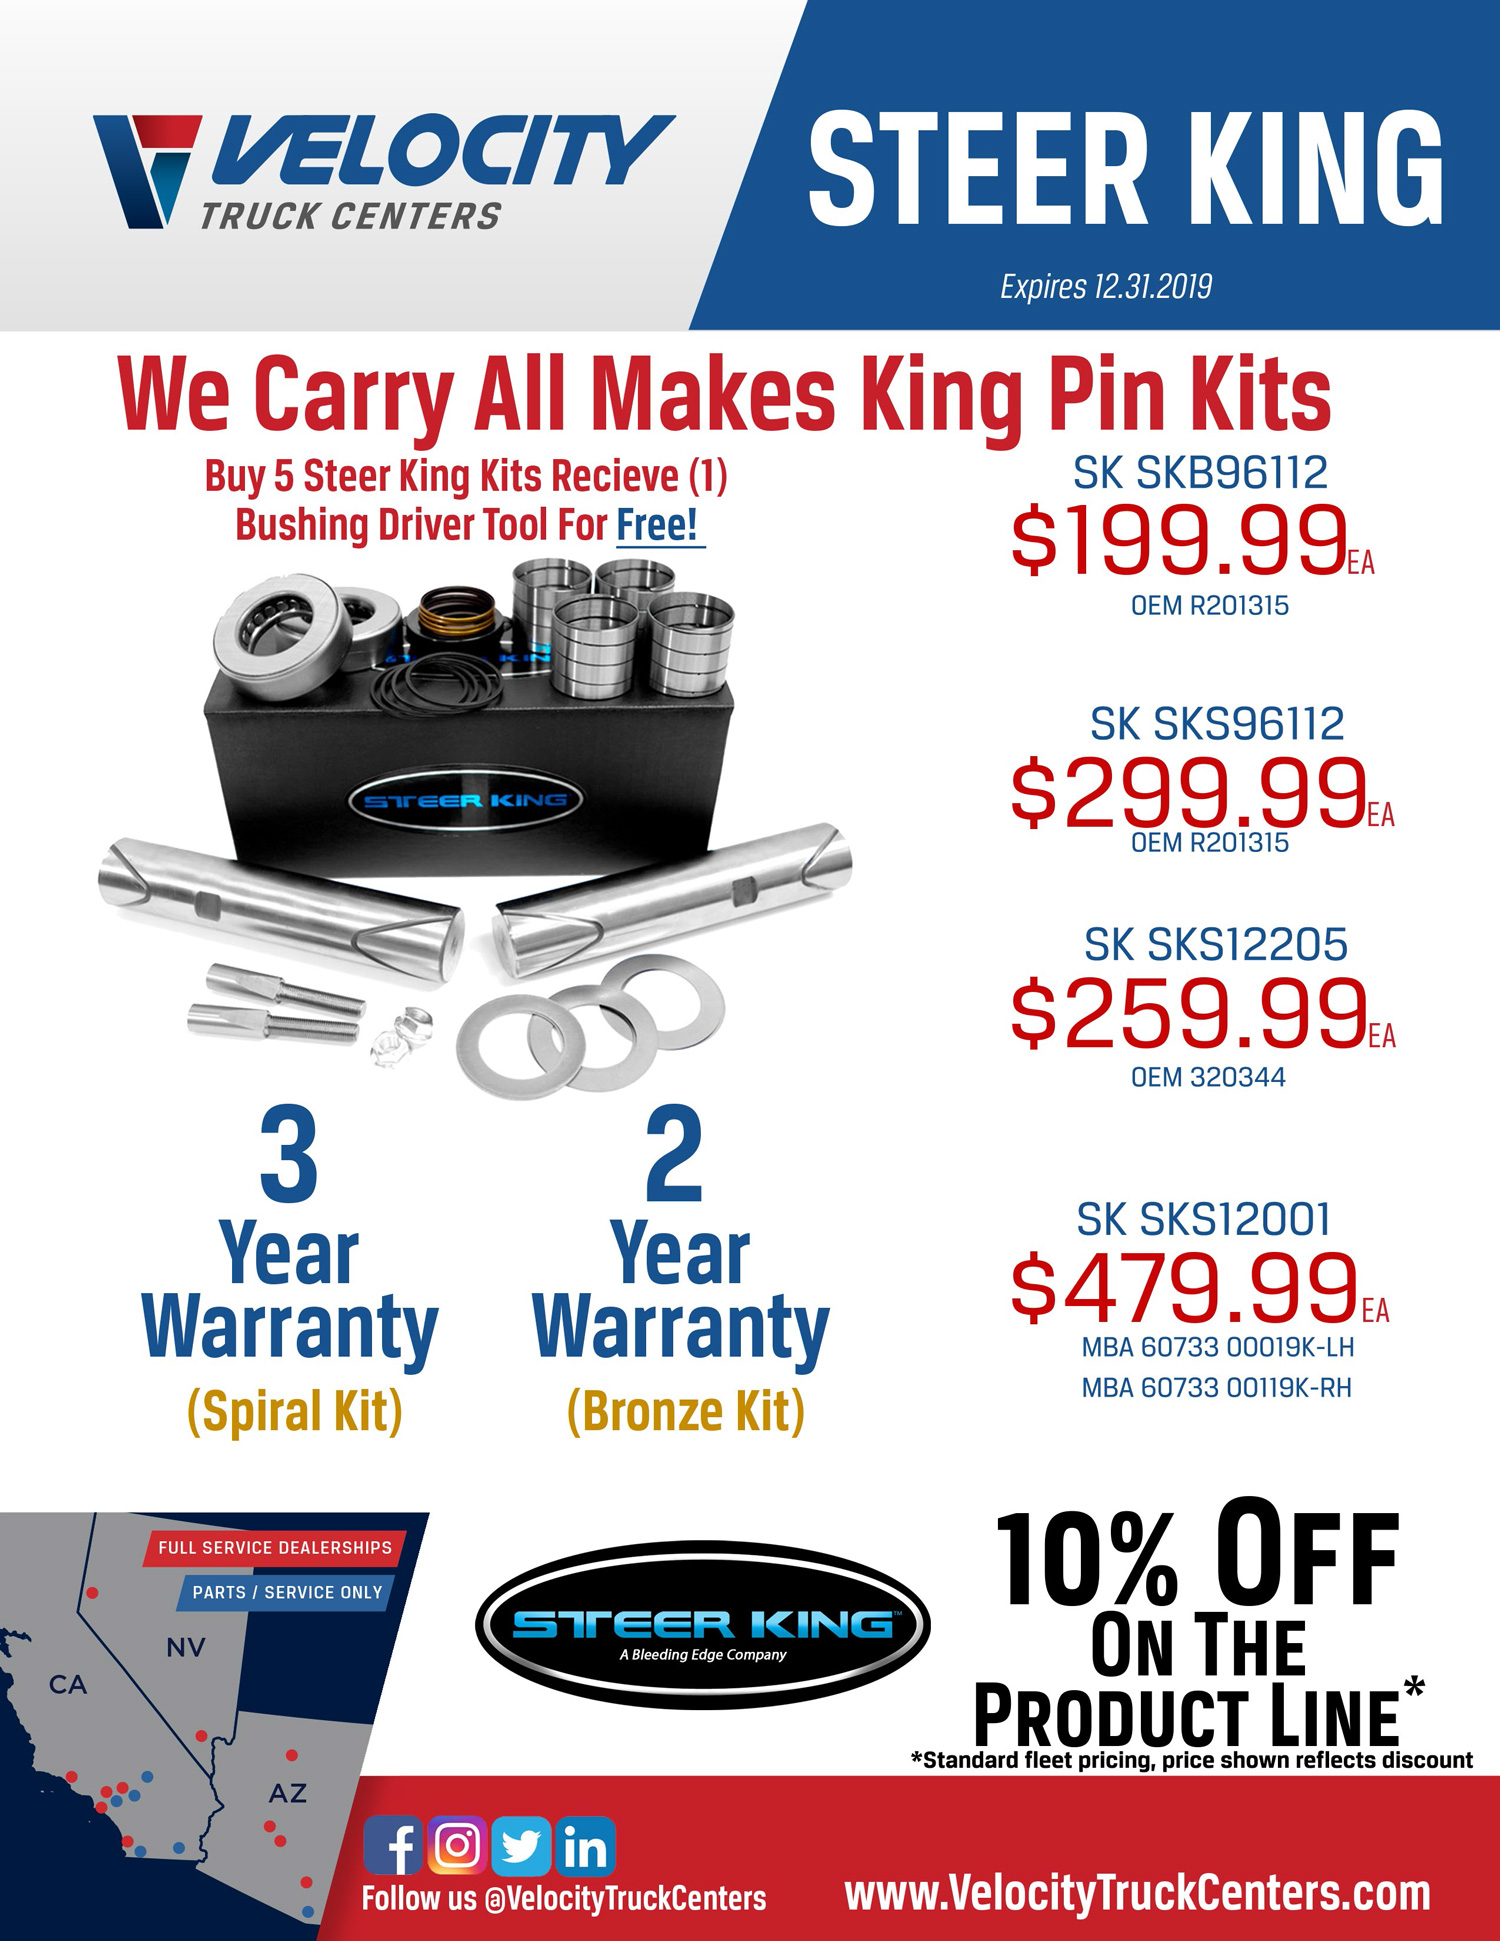 Steer King Parts Specials at Velocity Truck Centers